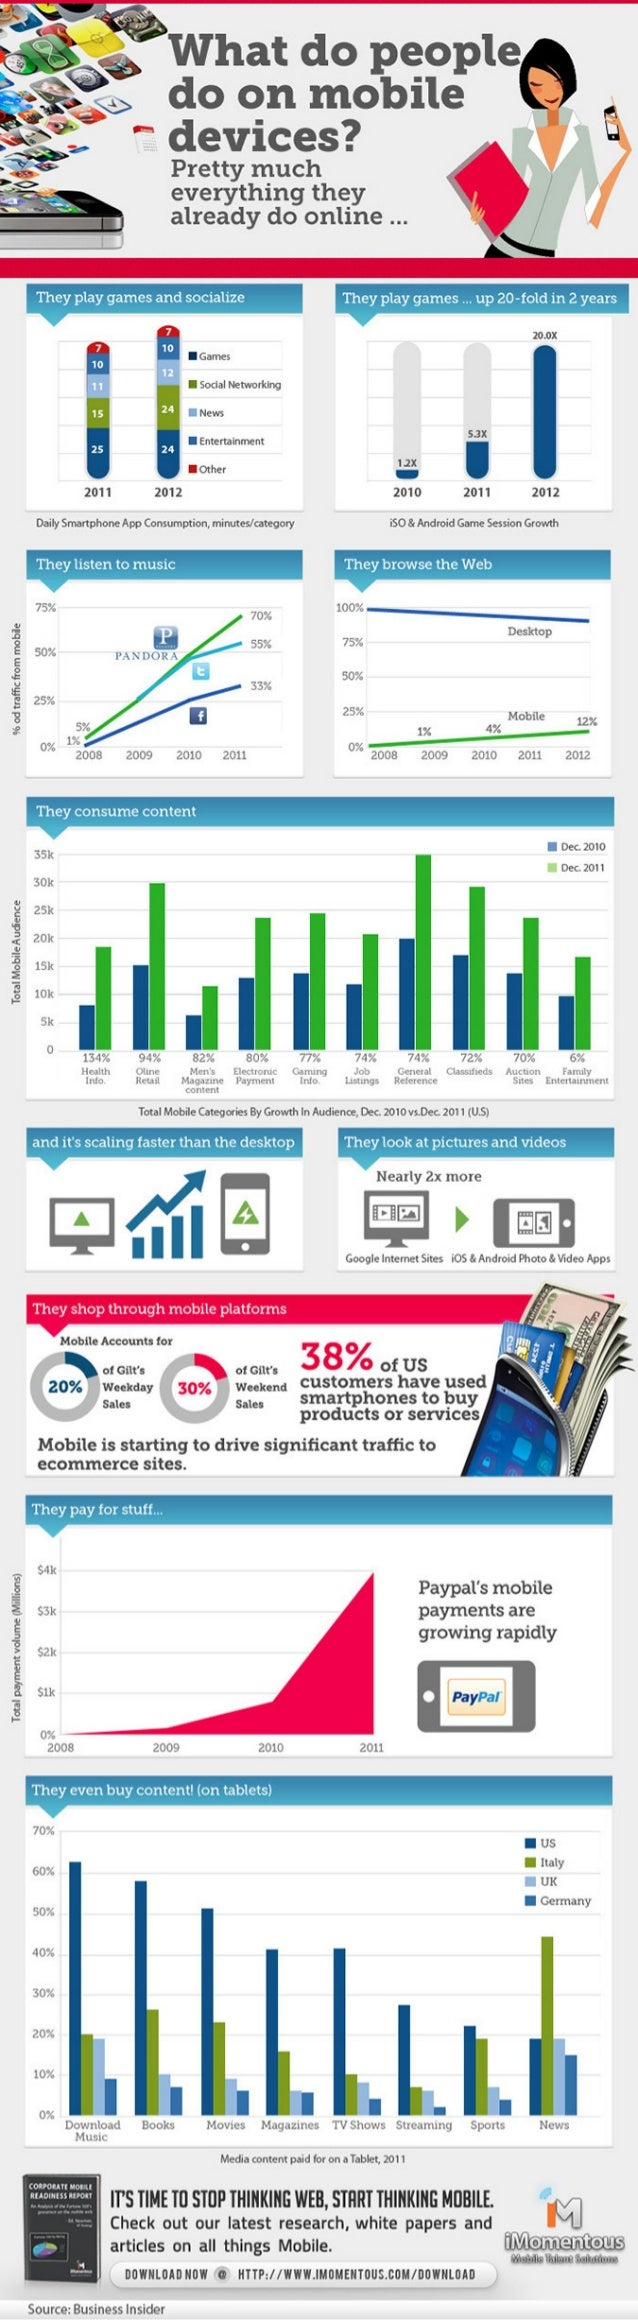 What do People do on Mobile Devices?